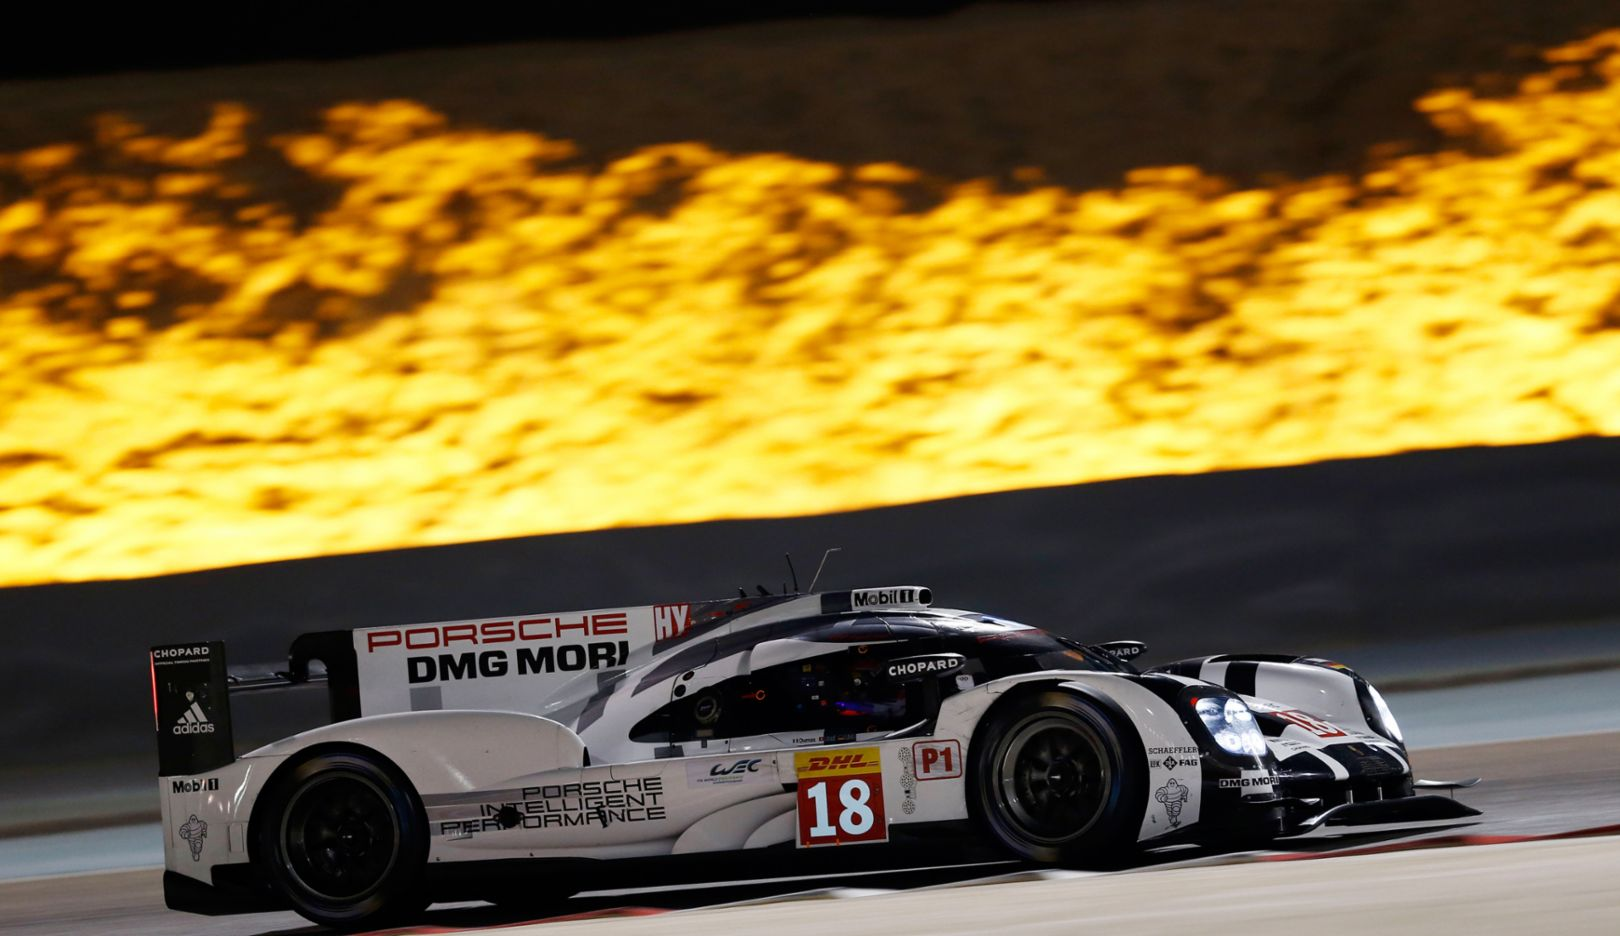 Porsche 919 Hybrid, Bahrain International Circuit, 2015, Porsche AG